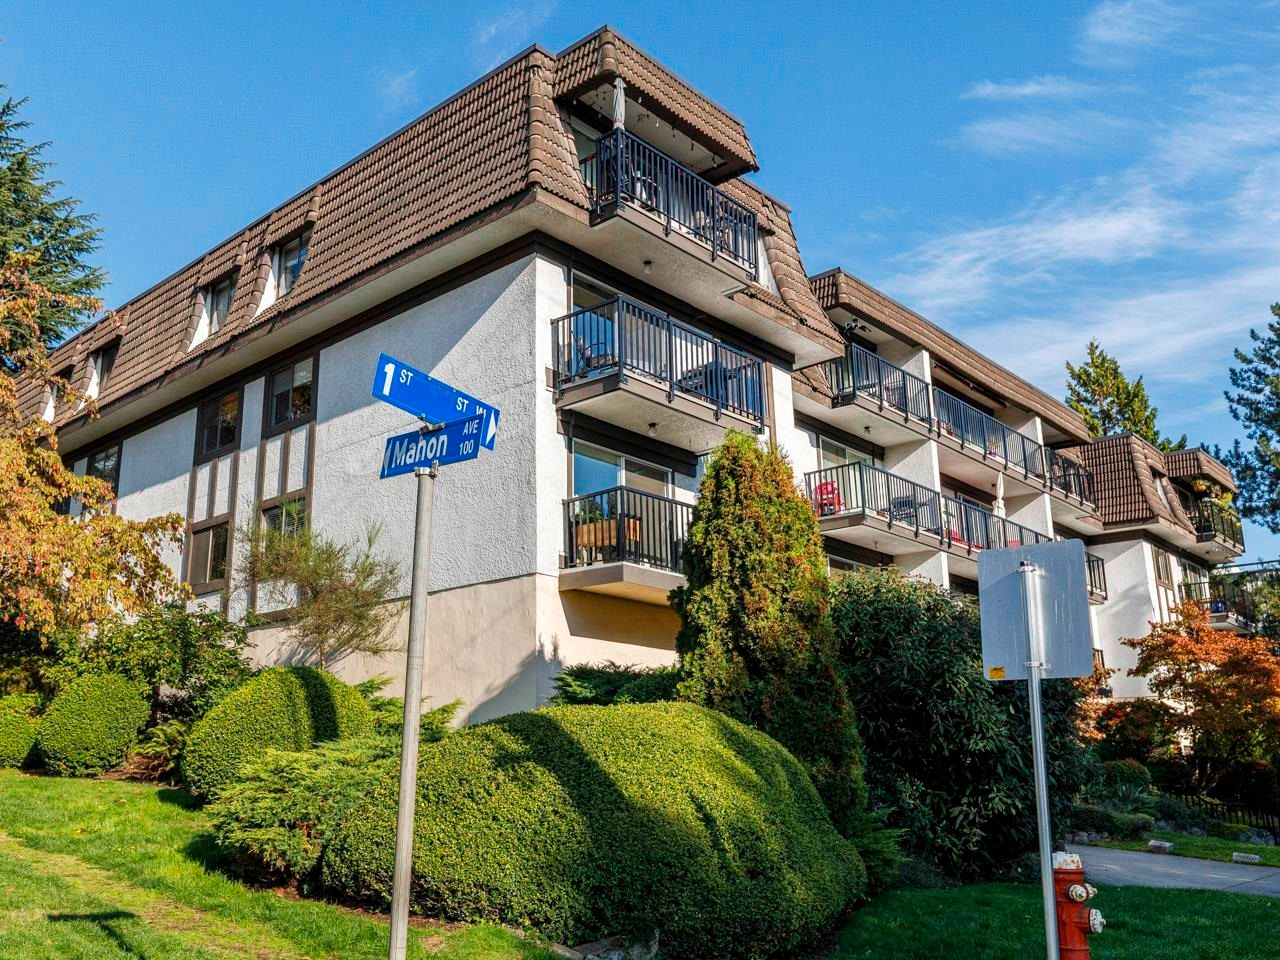 """Main Photo: 207 270 W 1ST Street in North Vancouver: Lower Lonsdale Condo for sale in """"Dorest Manor"""" : MLS®# R2625084"""